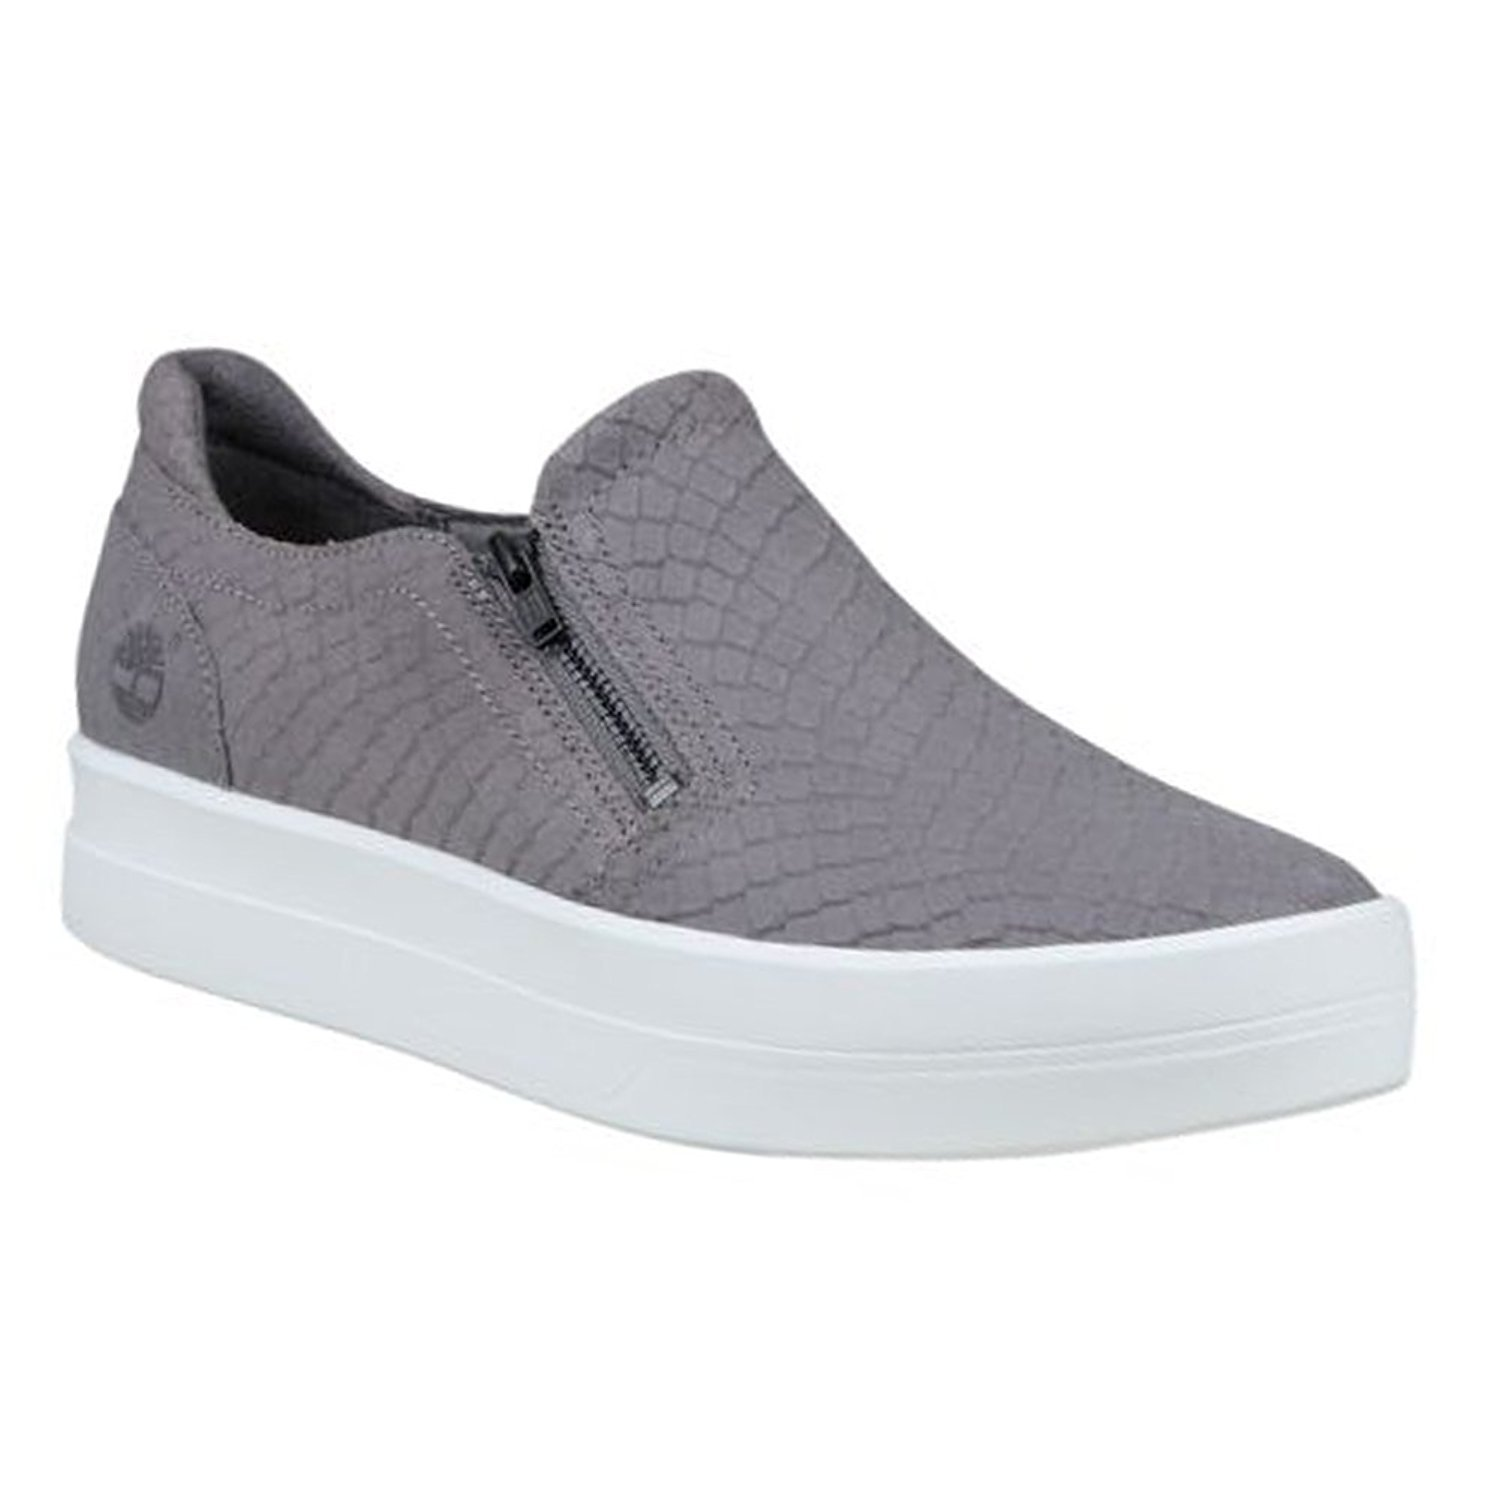 Timberland Womens Mayliss Low Top Slip On Fashion Sneakers, Grey, Size 9.0